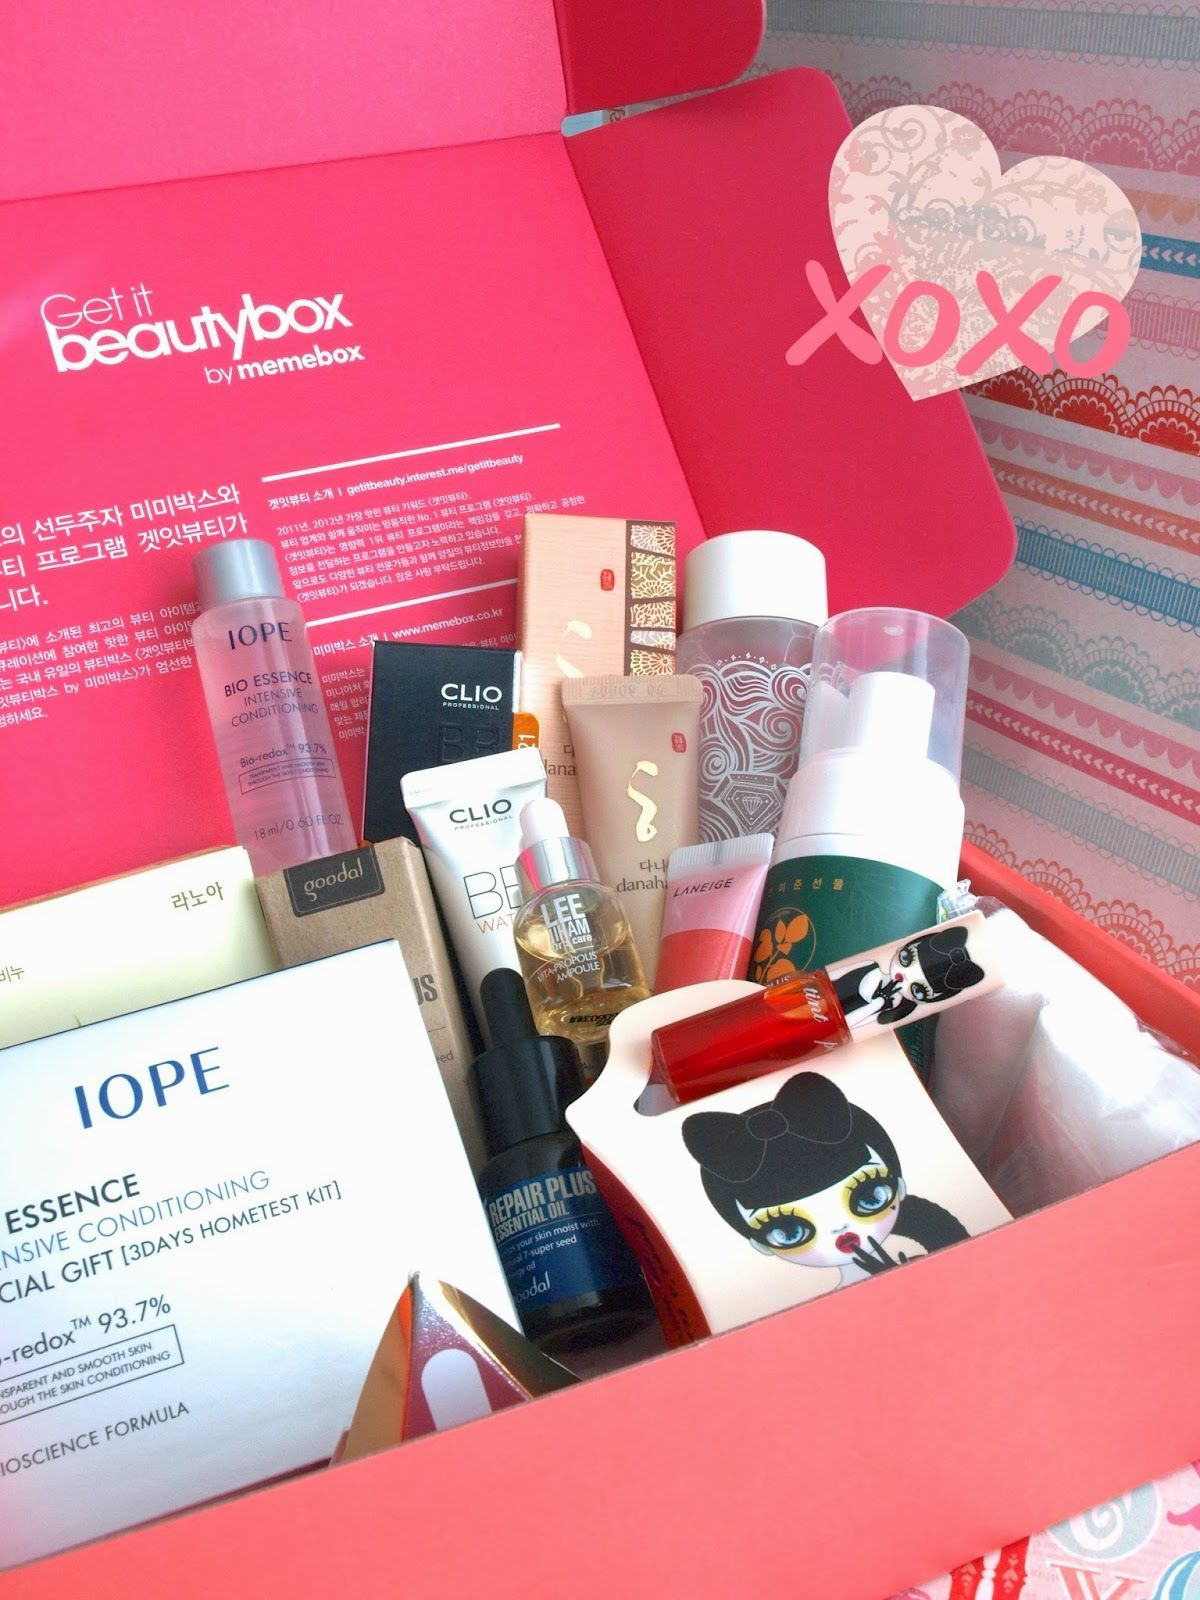 The Happy Sloths Memebox Korean Beauty Box 4th Global Edition Review Koreanmakeupproducts Beauty Box Korean Beauty Tips Memebox